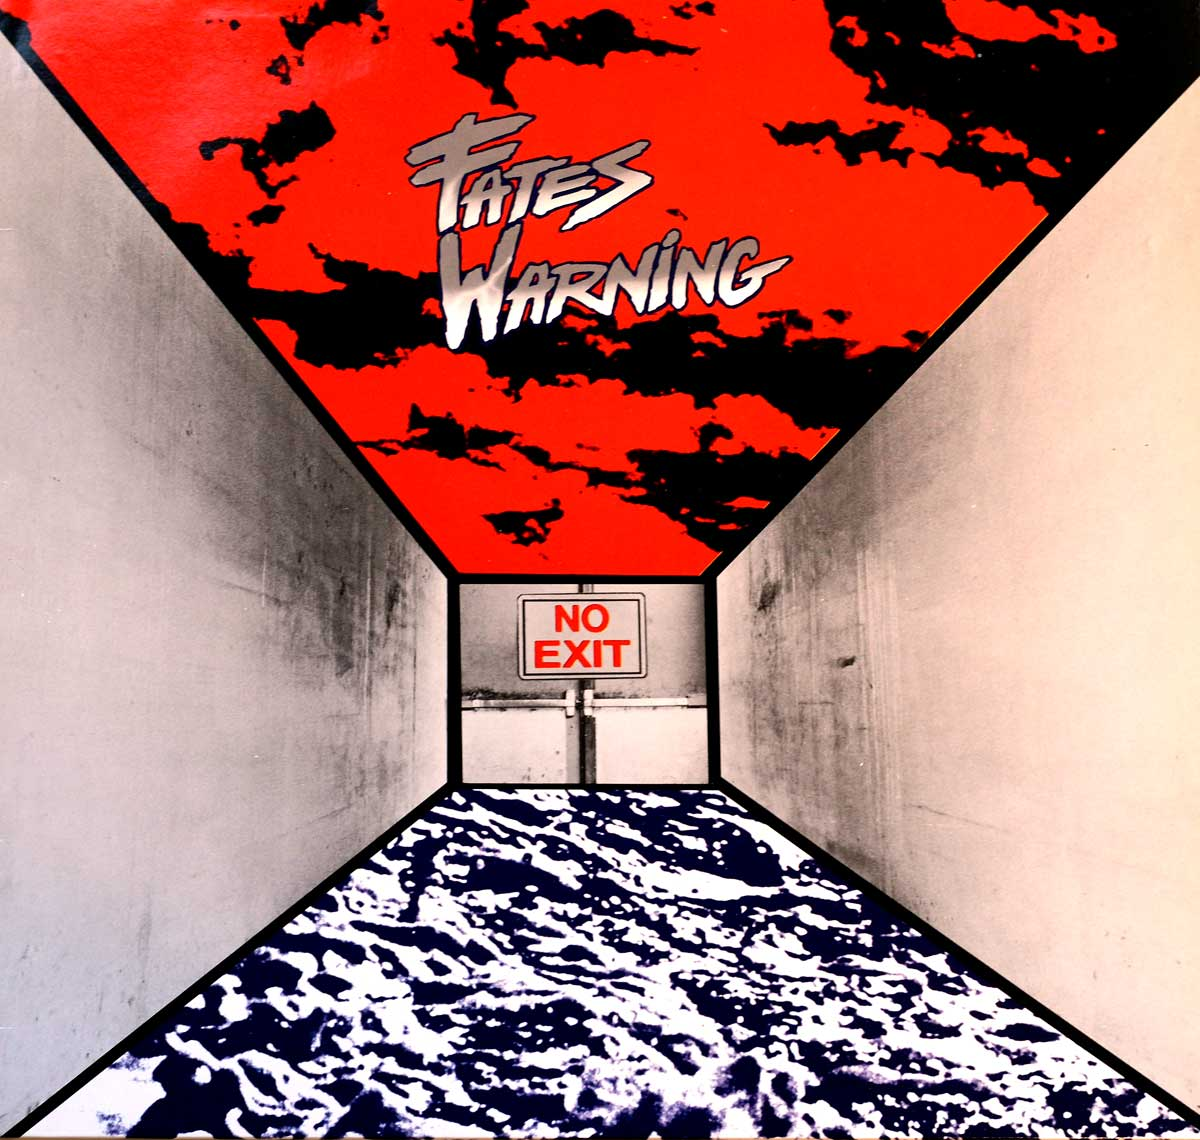 large photo of the album front cover of: FATES WARNING - No Exit METAL BLADE